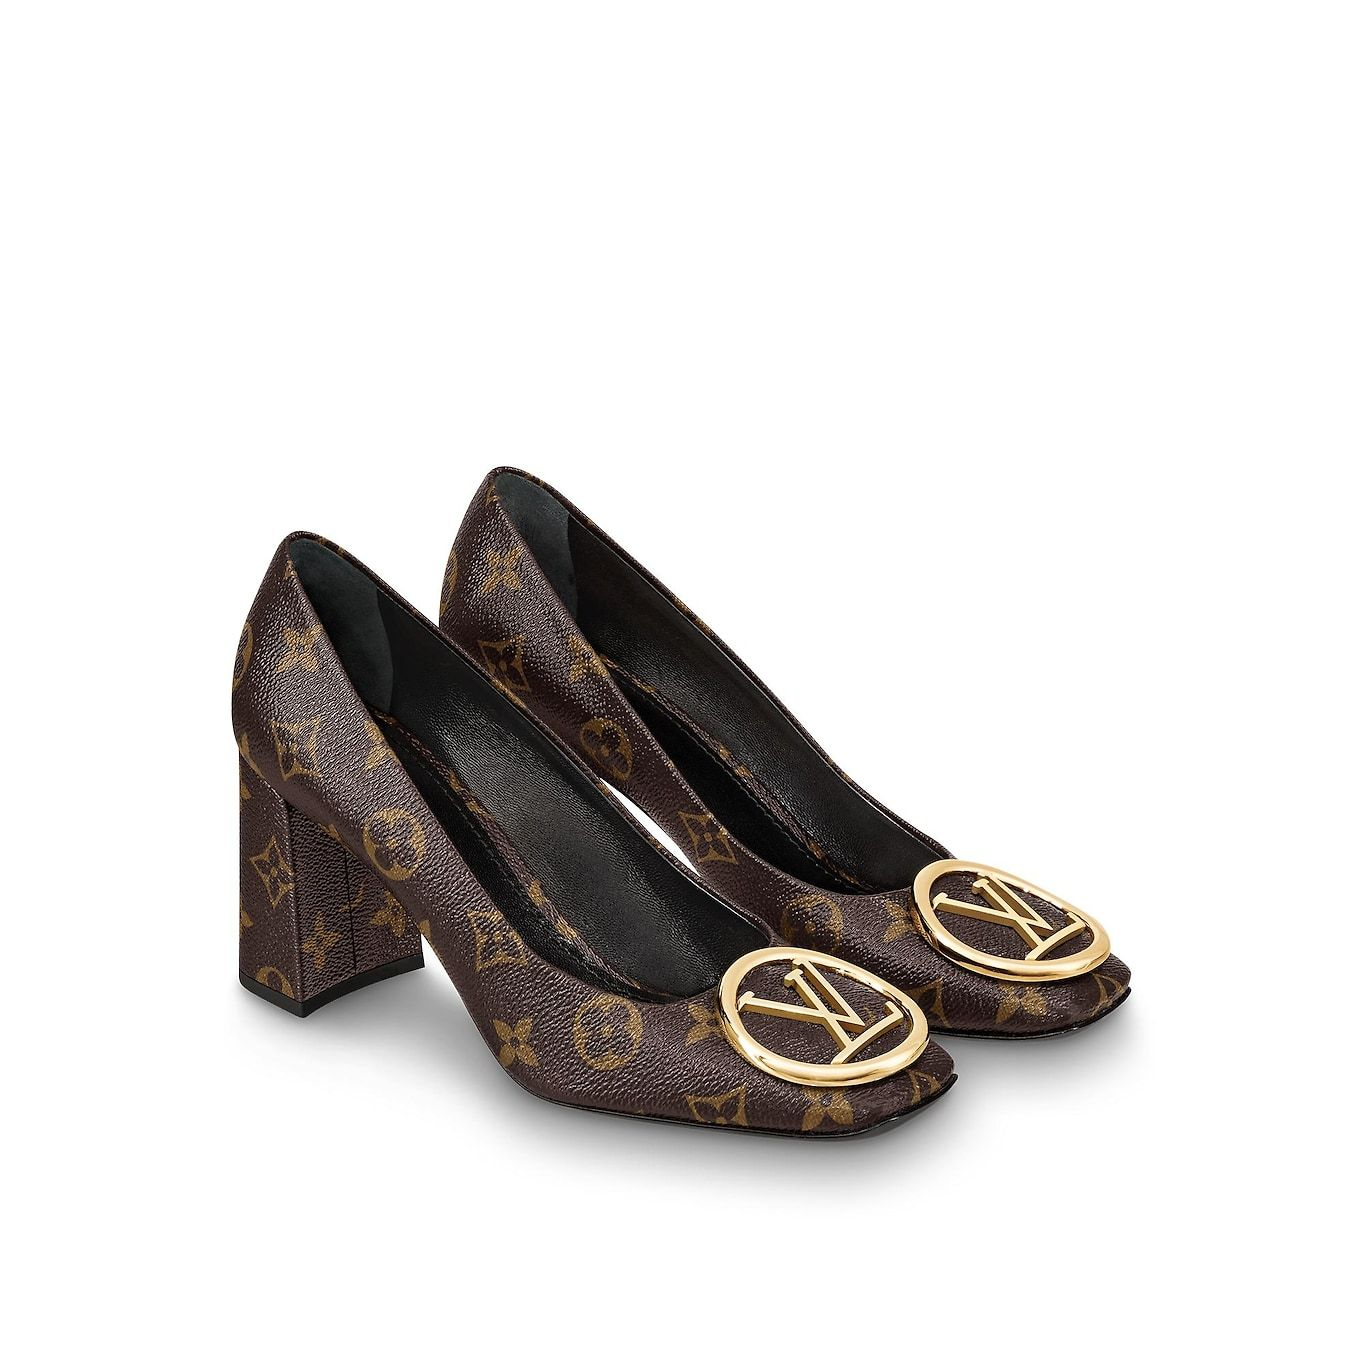 1e80280472ed View 2 - Madeleine Pump in Women s Shoes All Collections collections by Louis  Vuitton